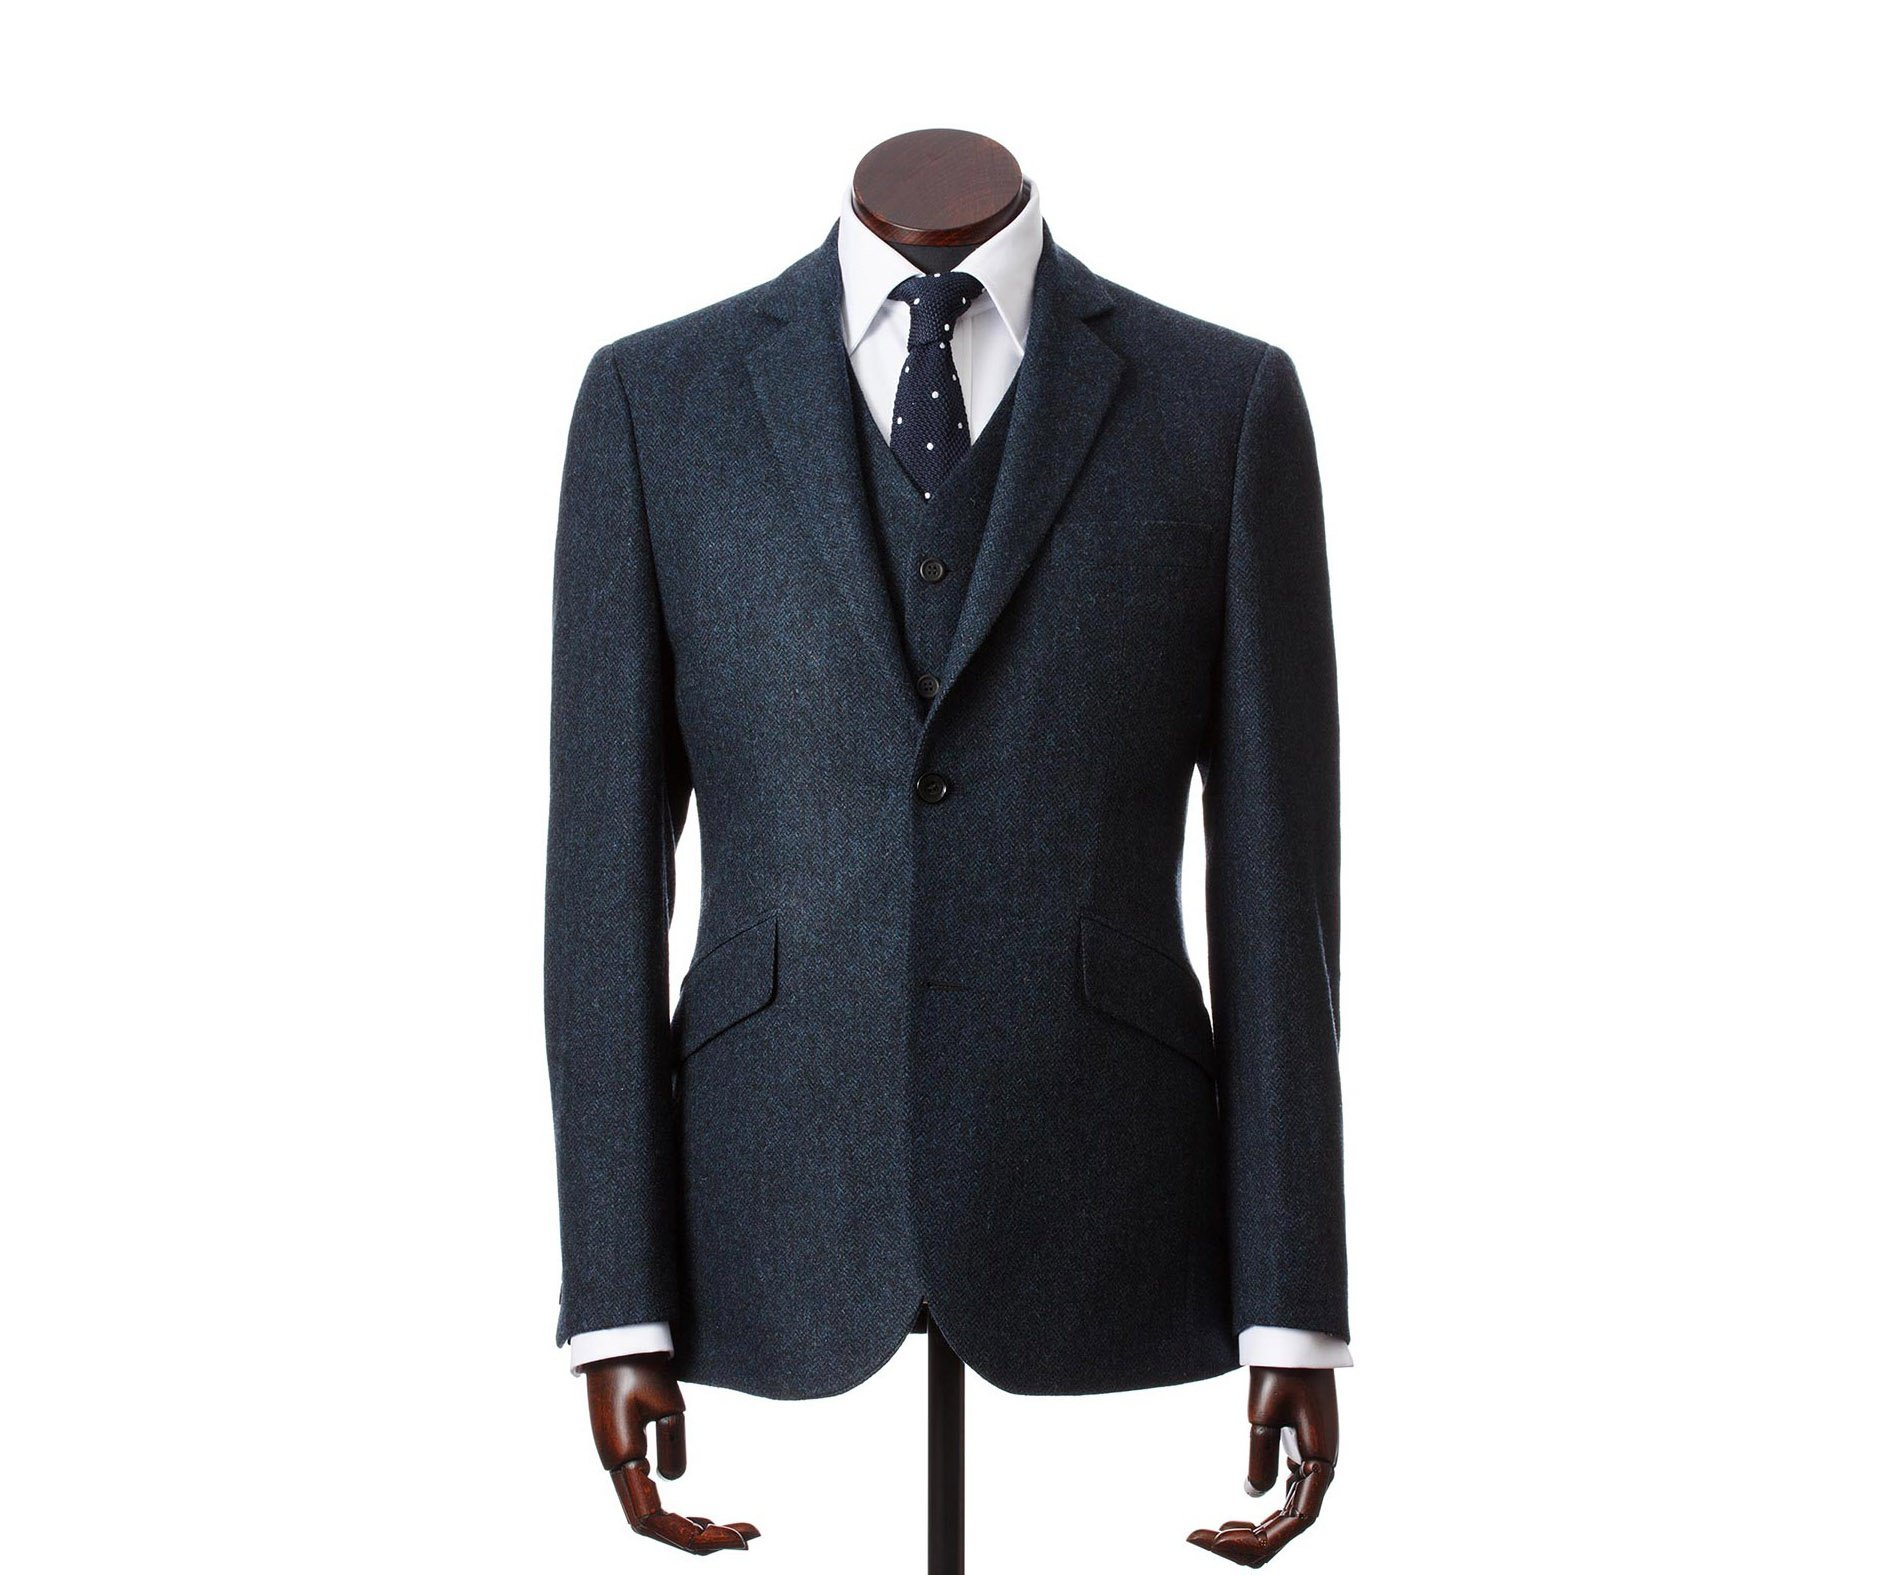 Men's Tweed Suits Martin Navy